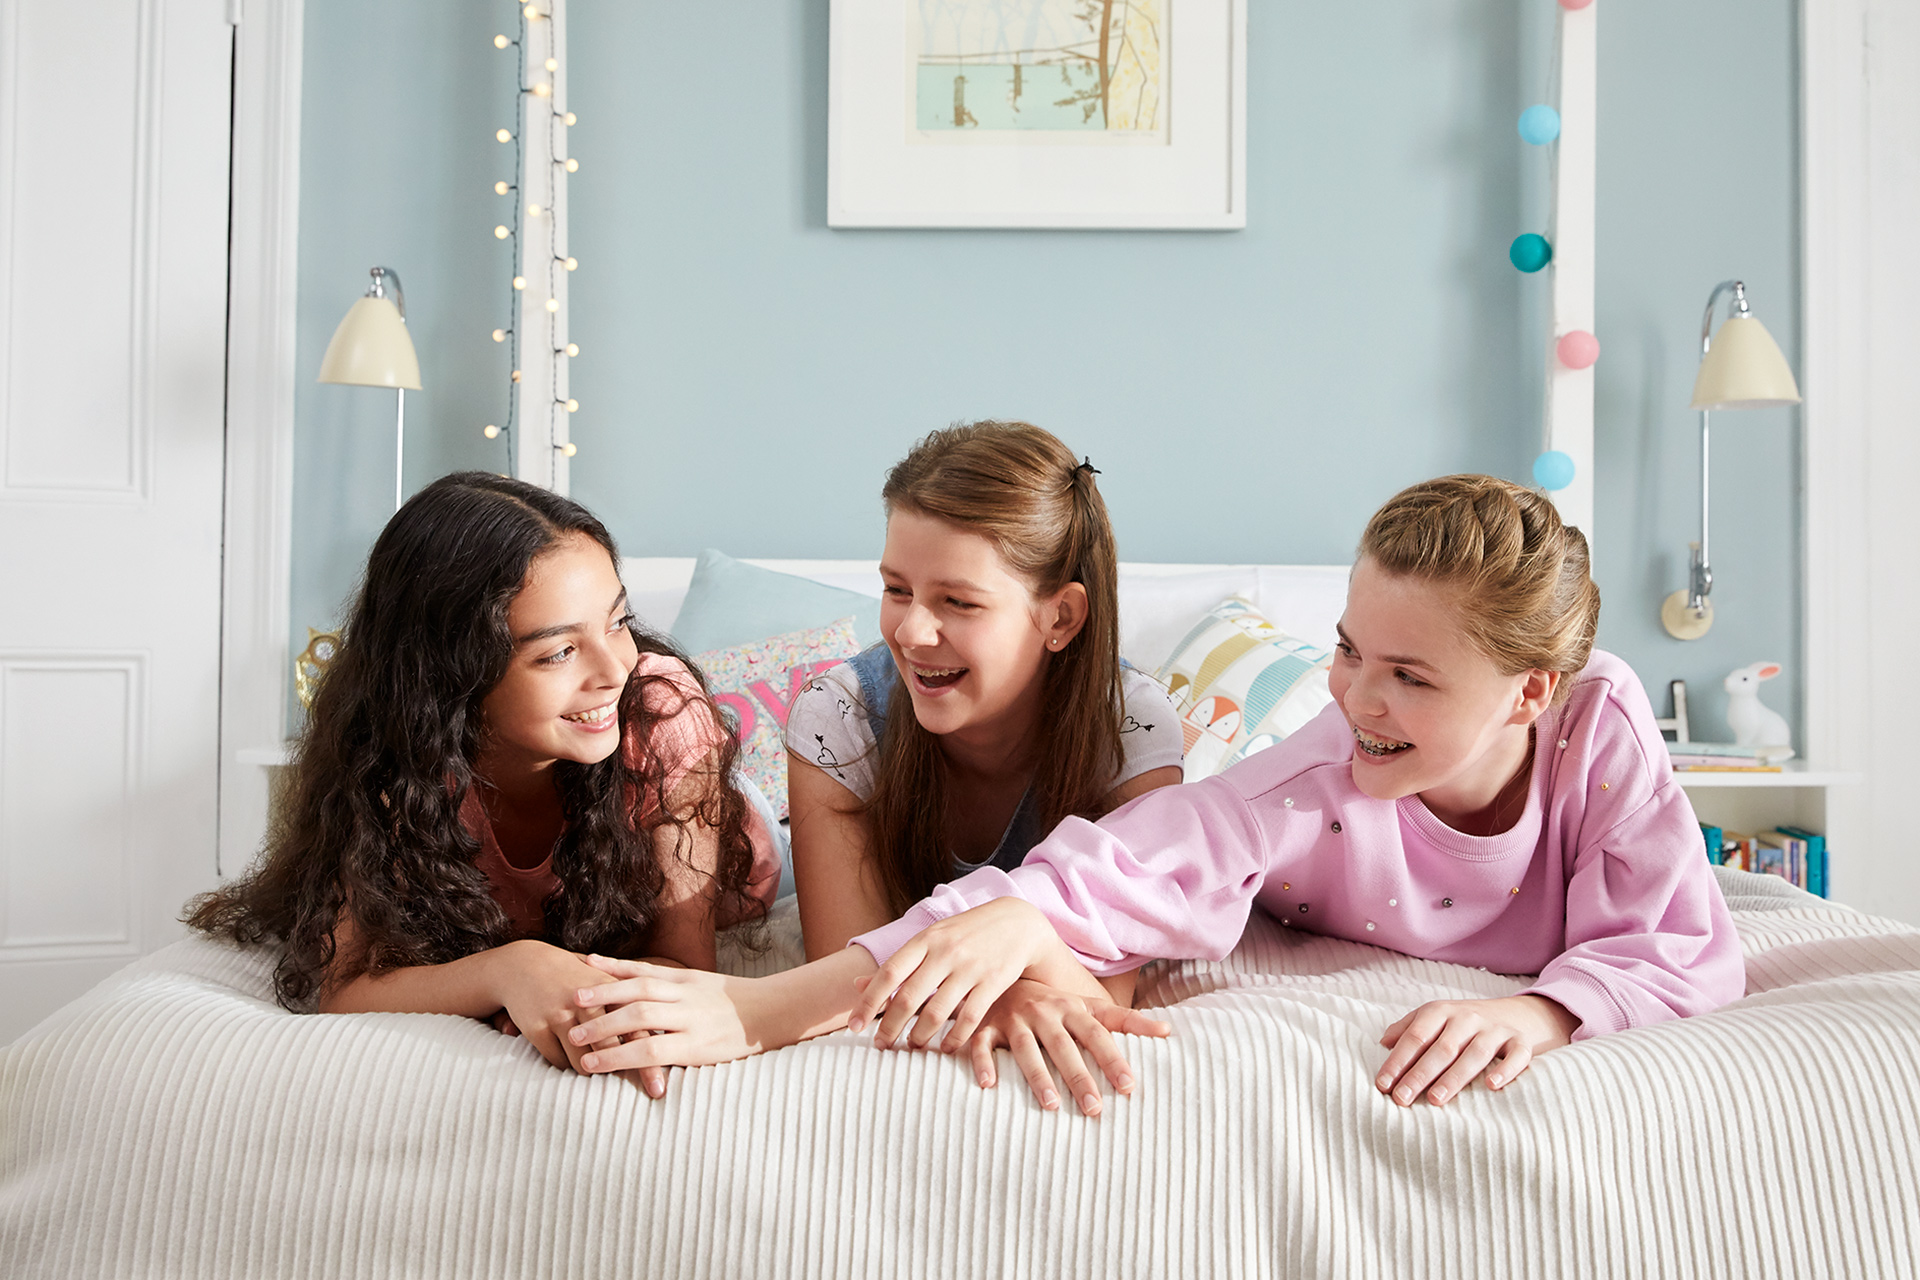 Three girl friends chatting on a bed together